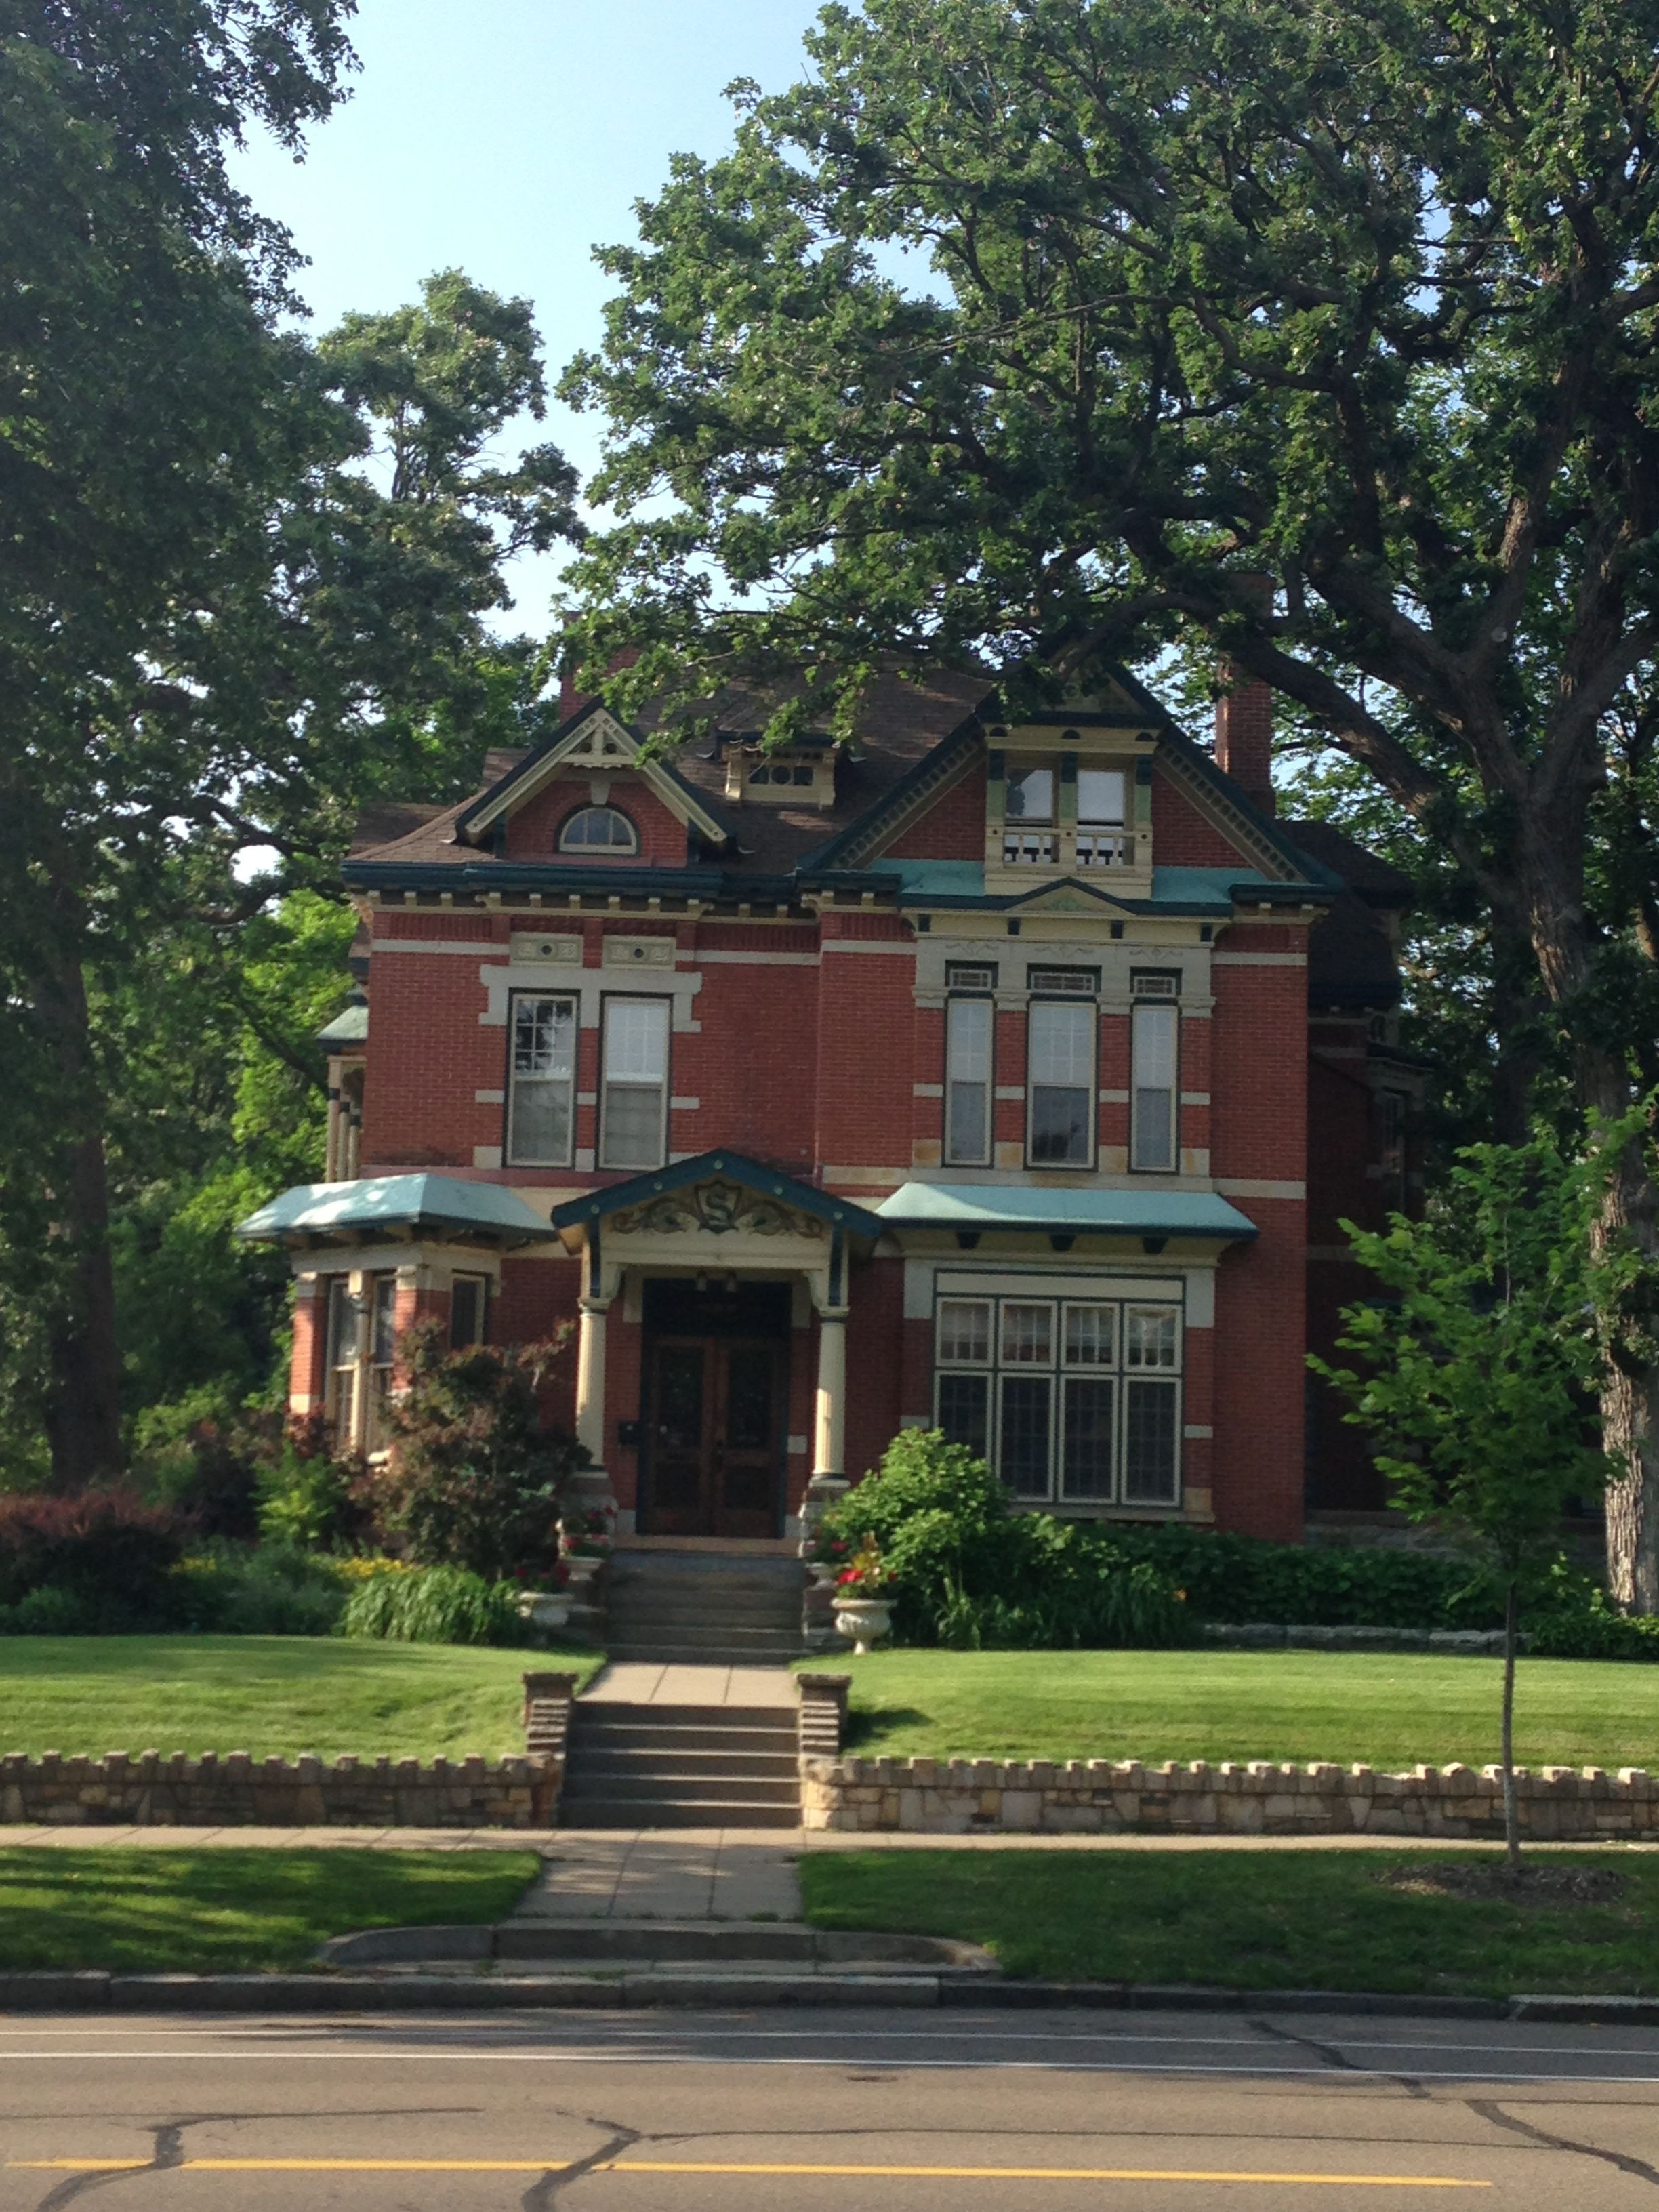 House On Summit Ave St Paul Mn Victorian Homes Victorian Architecture Old Houses